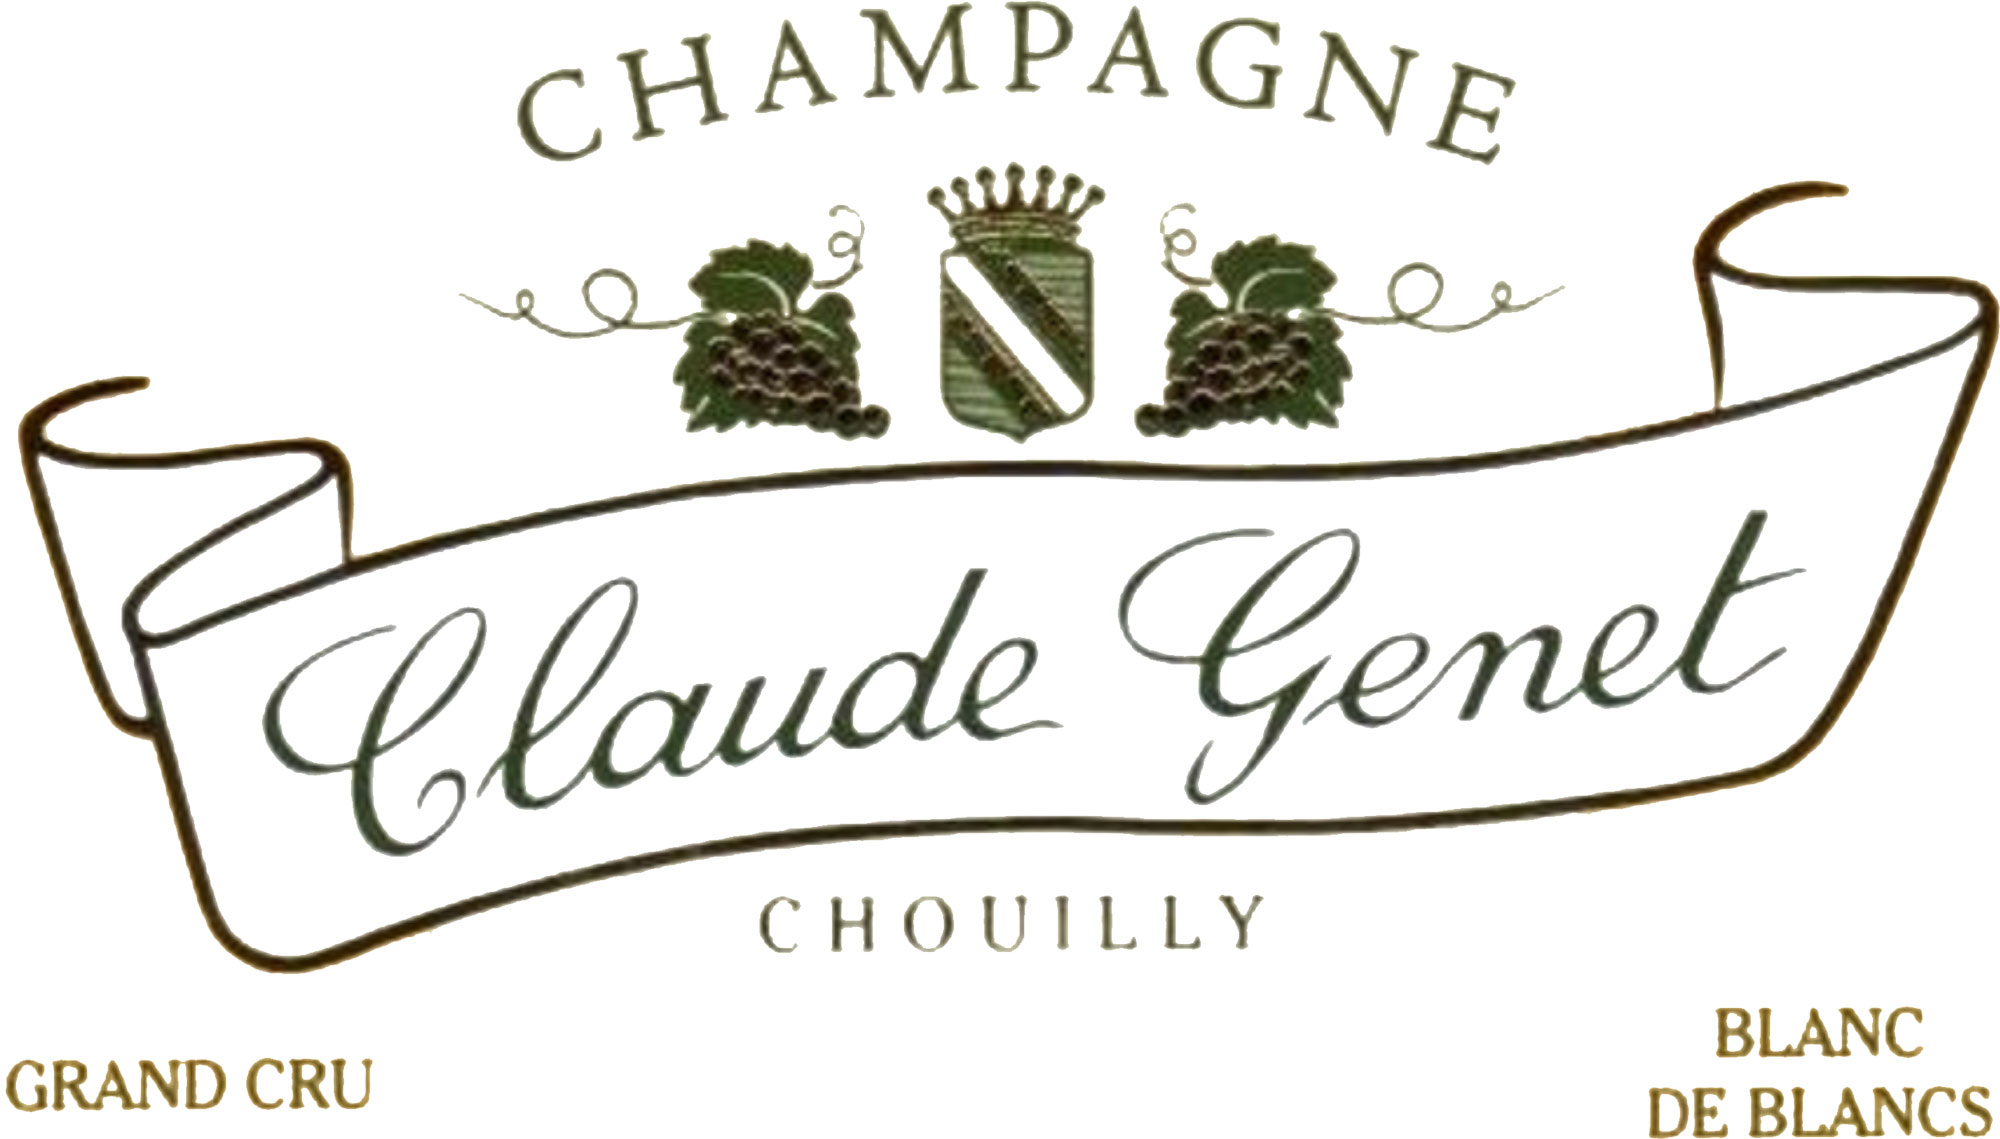 Claude Genet Champagne